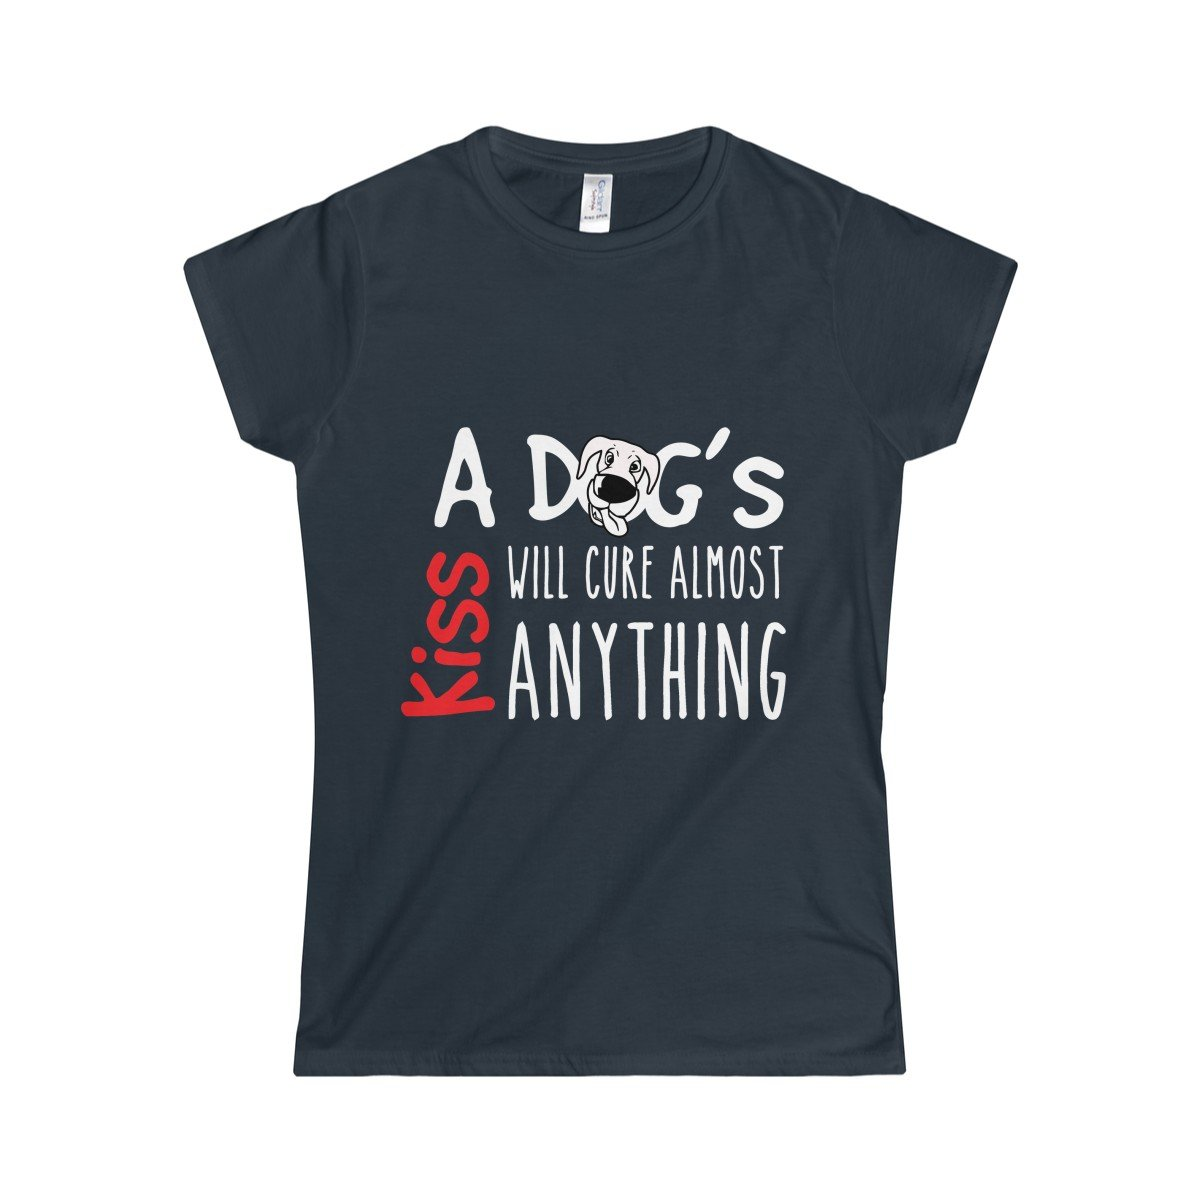 Funny Women's Navy Blue t-shirt with reading A Dog's Kiss Will Cure Almoast Anything